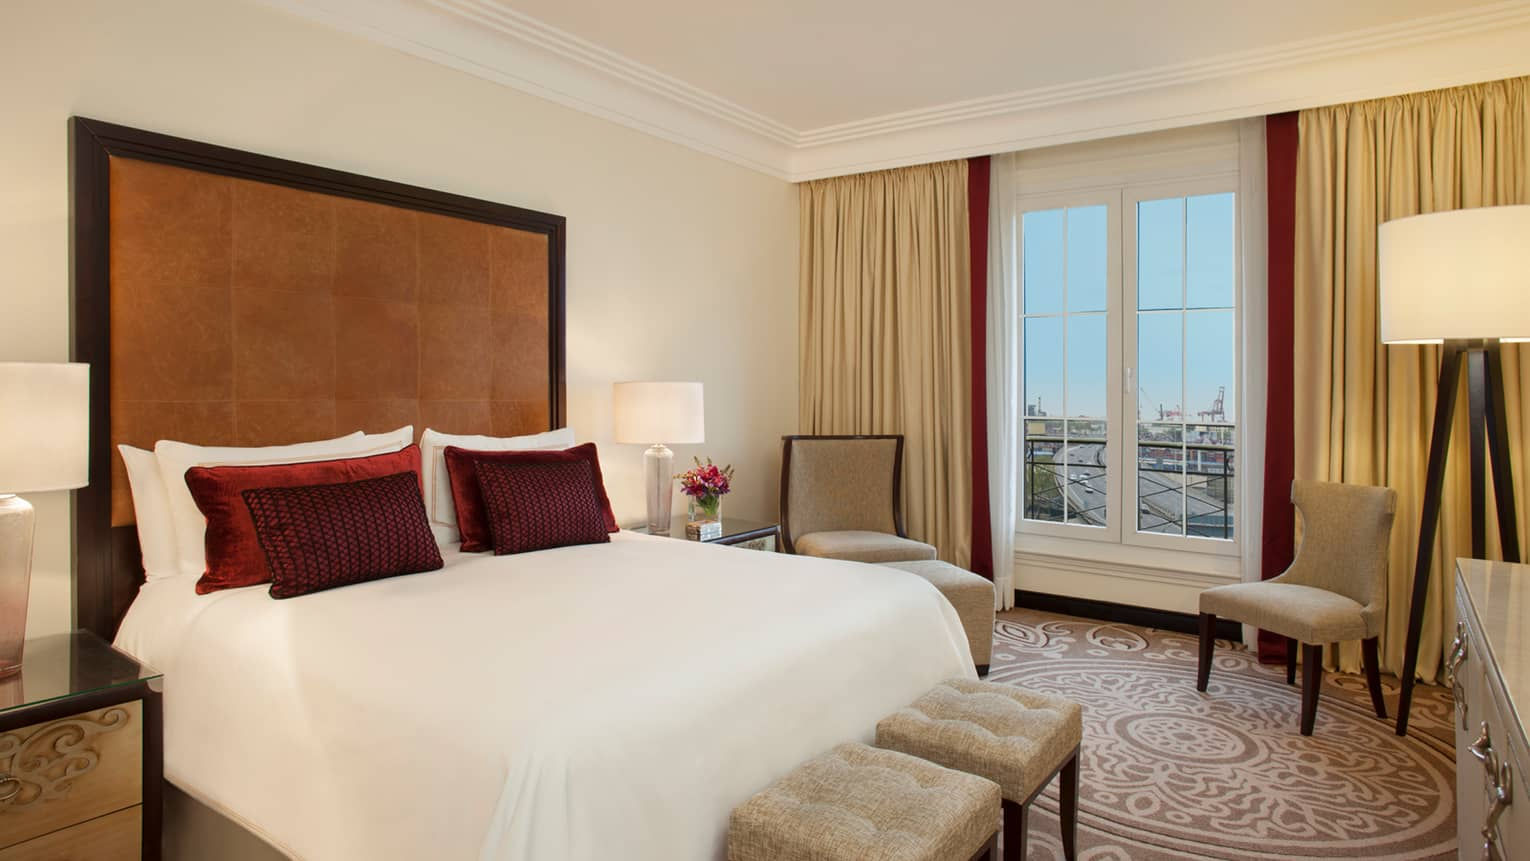 City-View One Bedroom Suite bed with tall padded leather headboard, small red accent pillows, two chairs by window